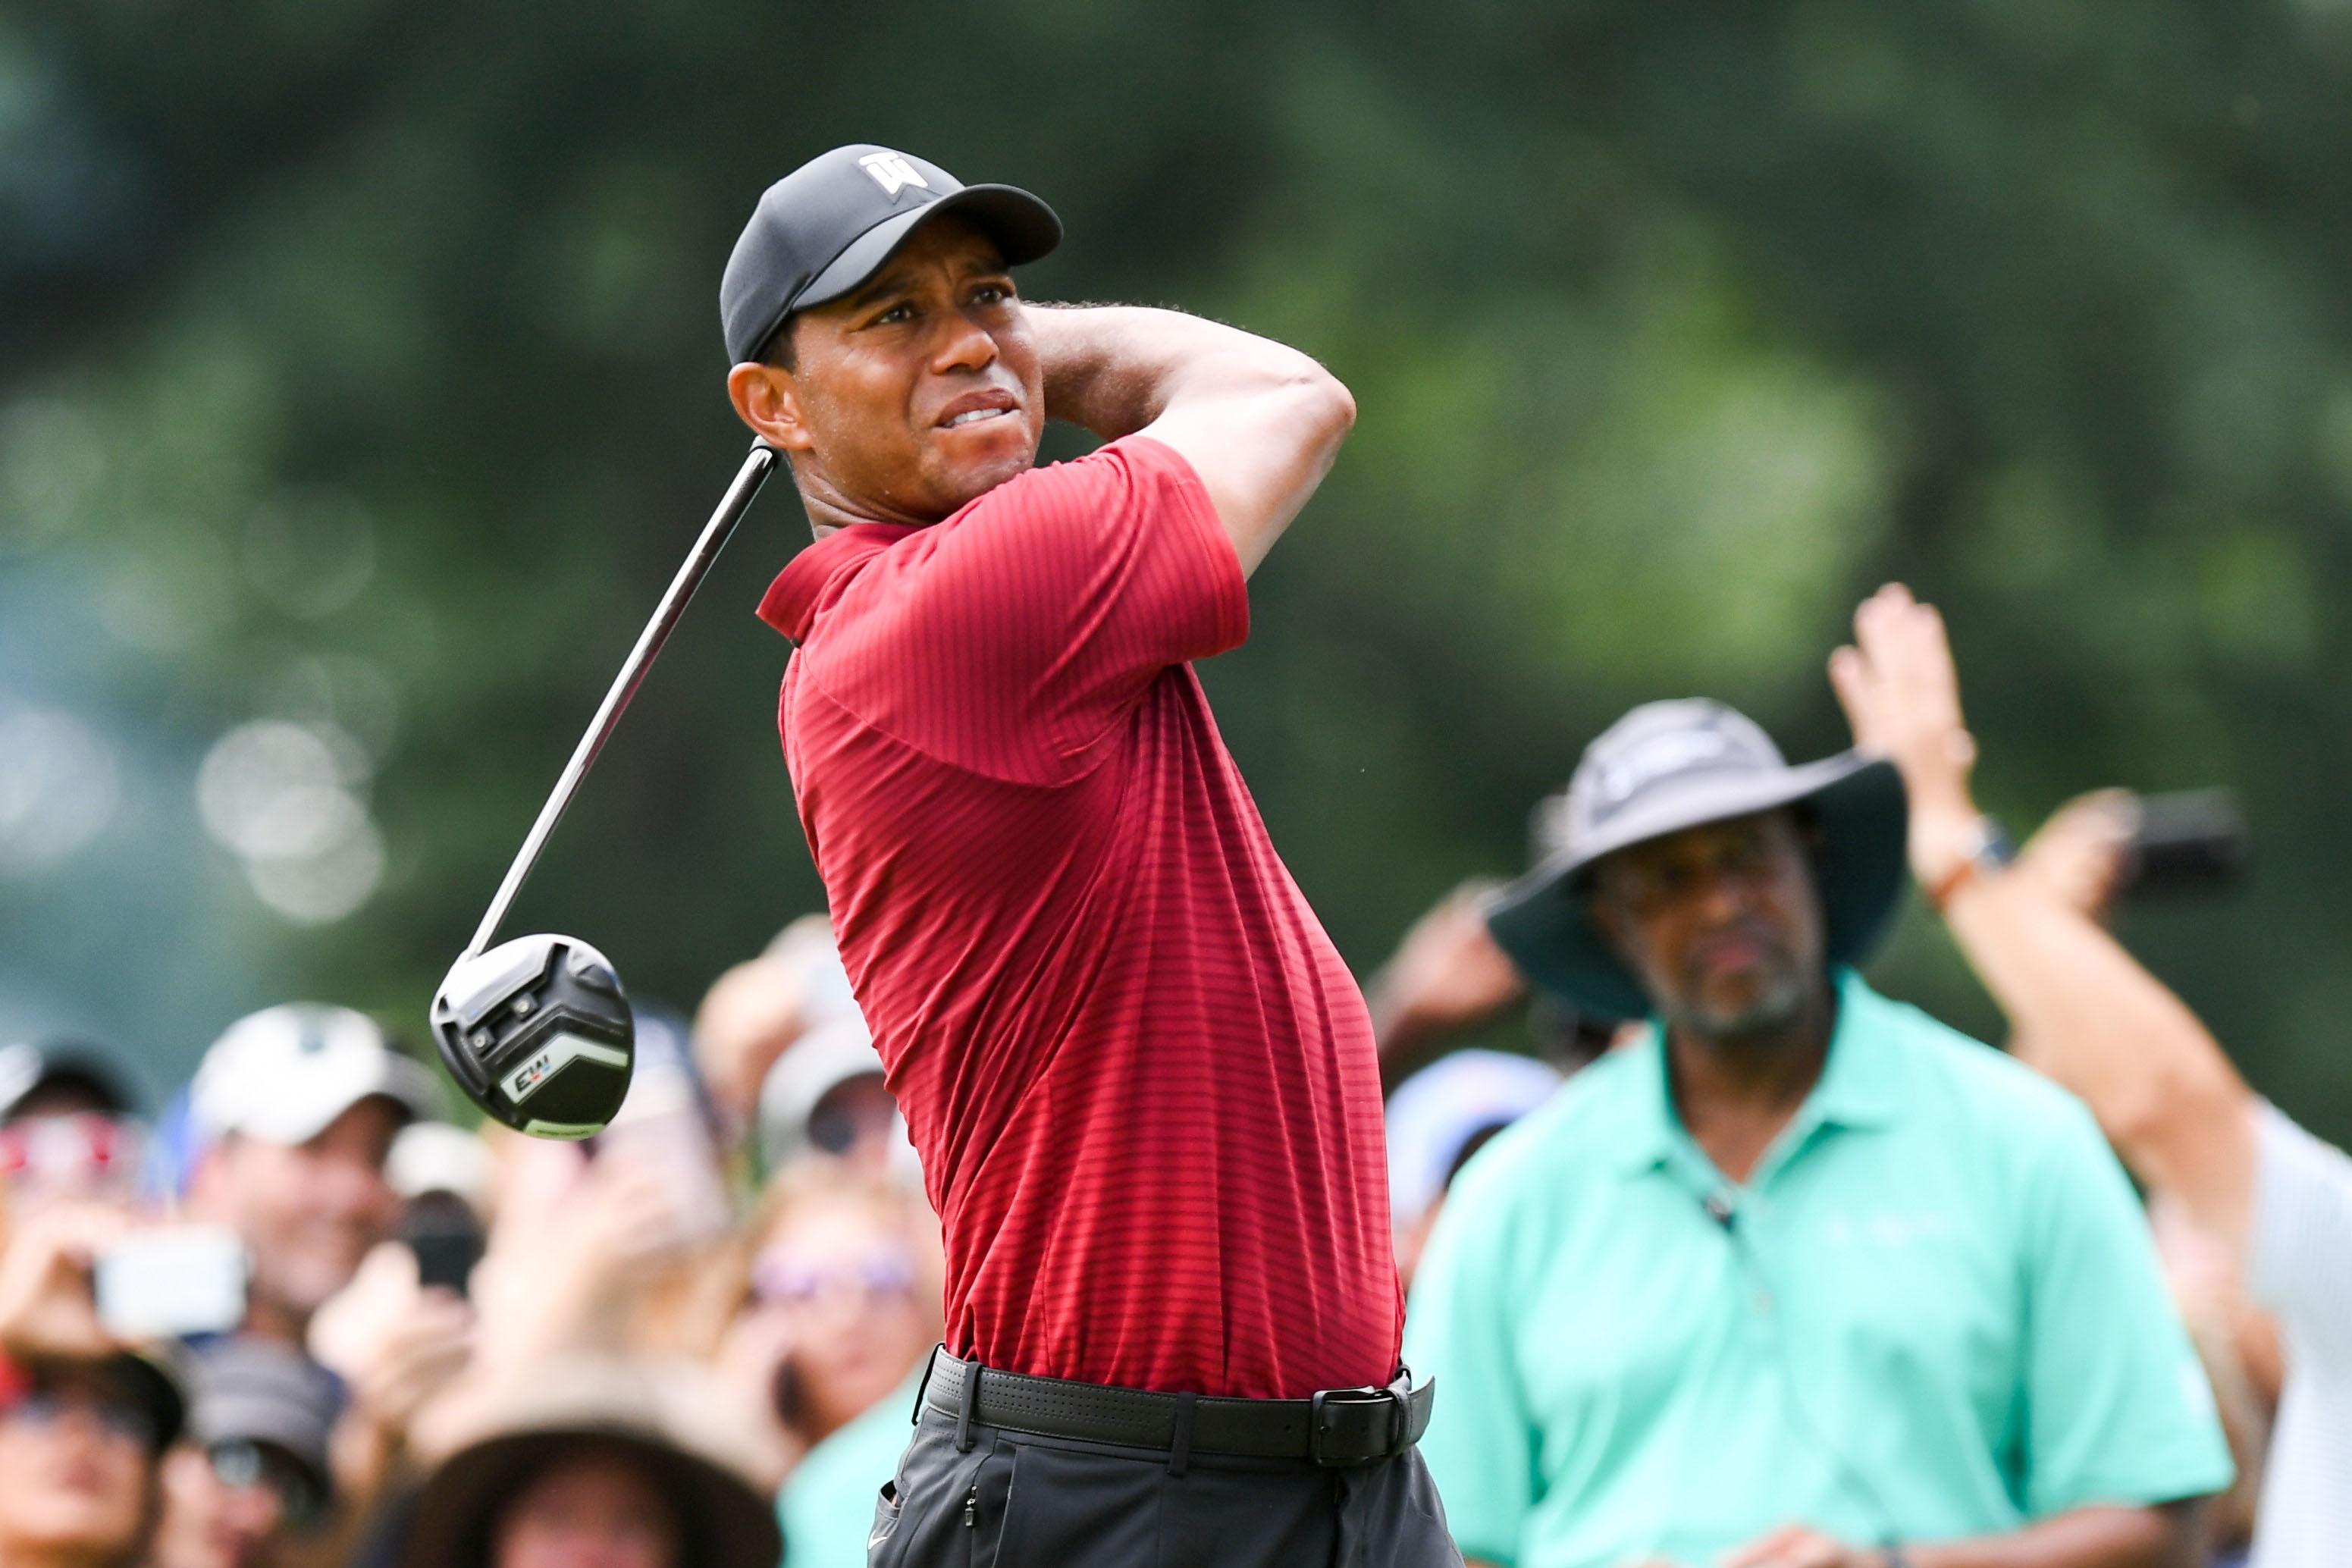 Tiger Woods has defended his close friendship with Donald Trump